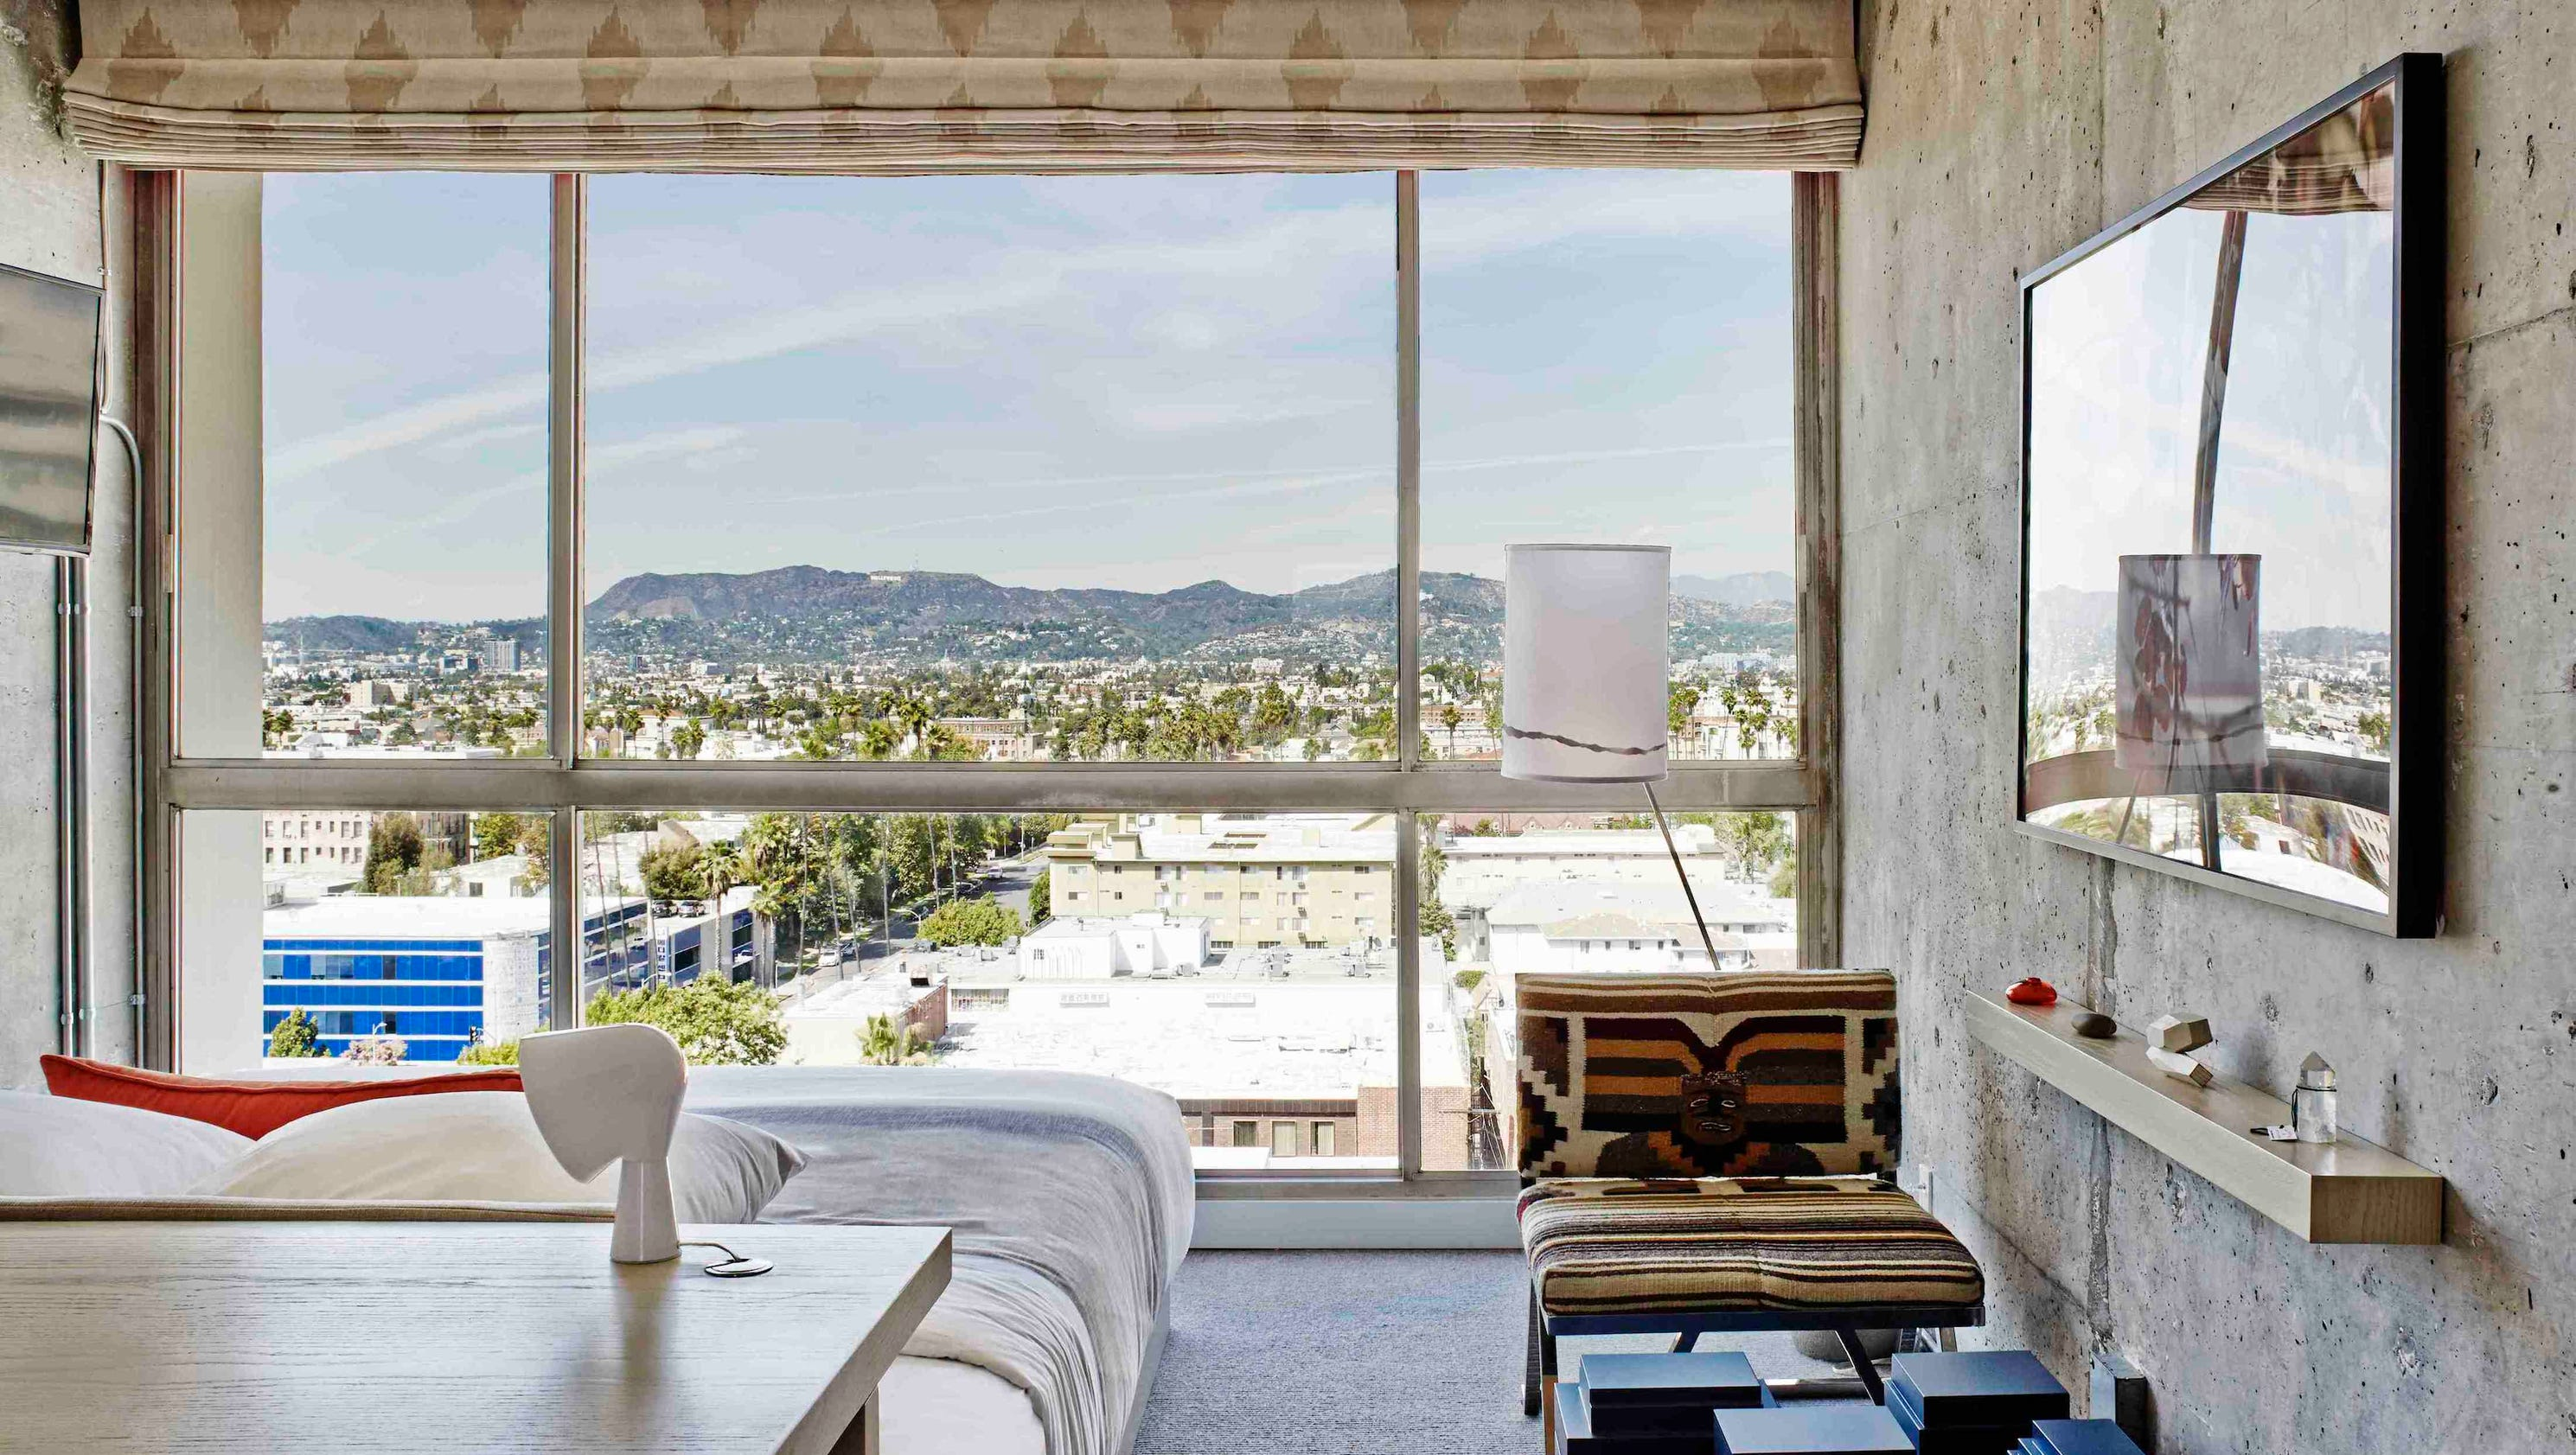 Take a look at los angeles 39 top 20 most popular hotels for Top 20 hotels